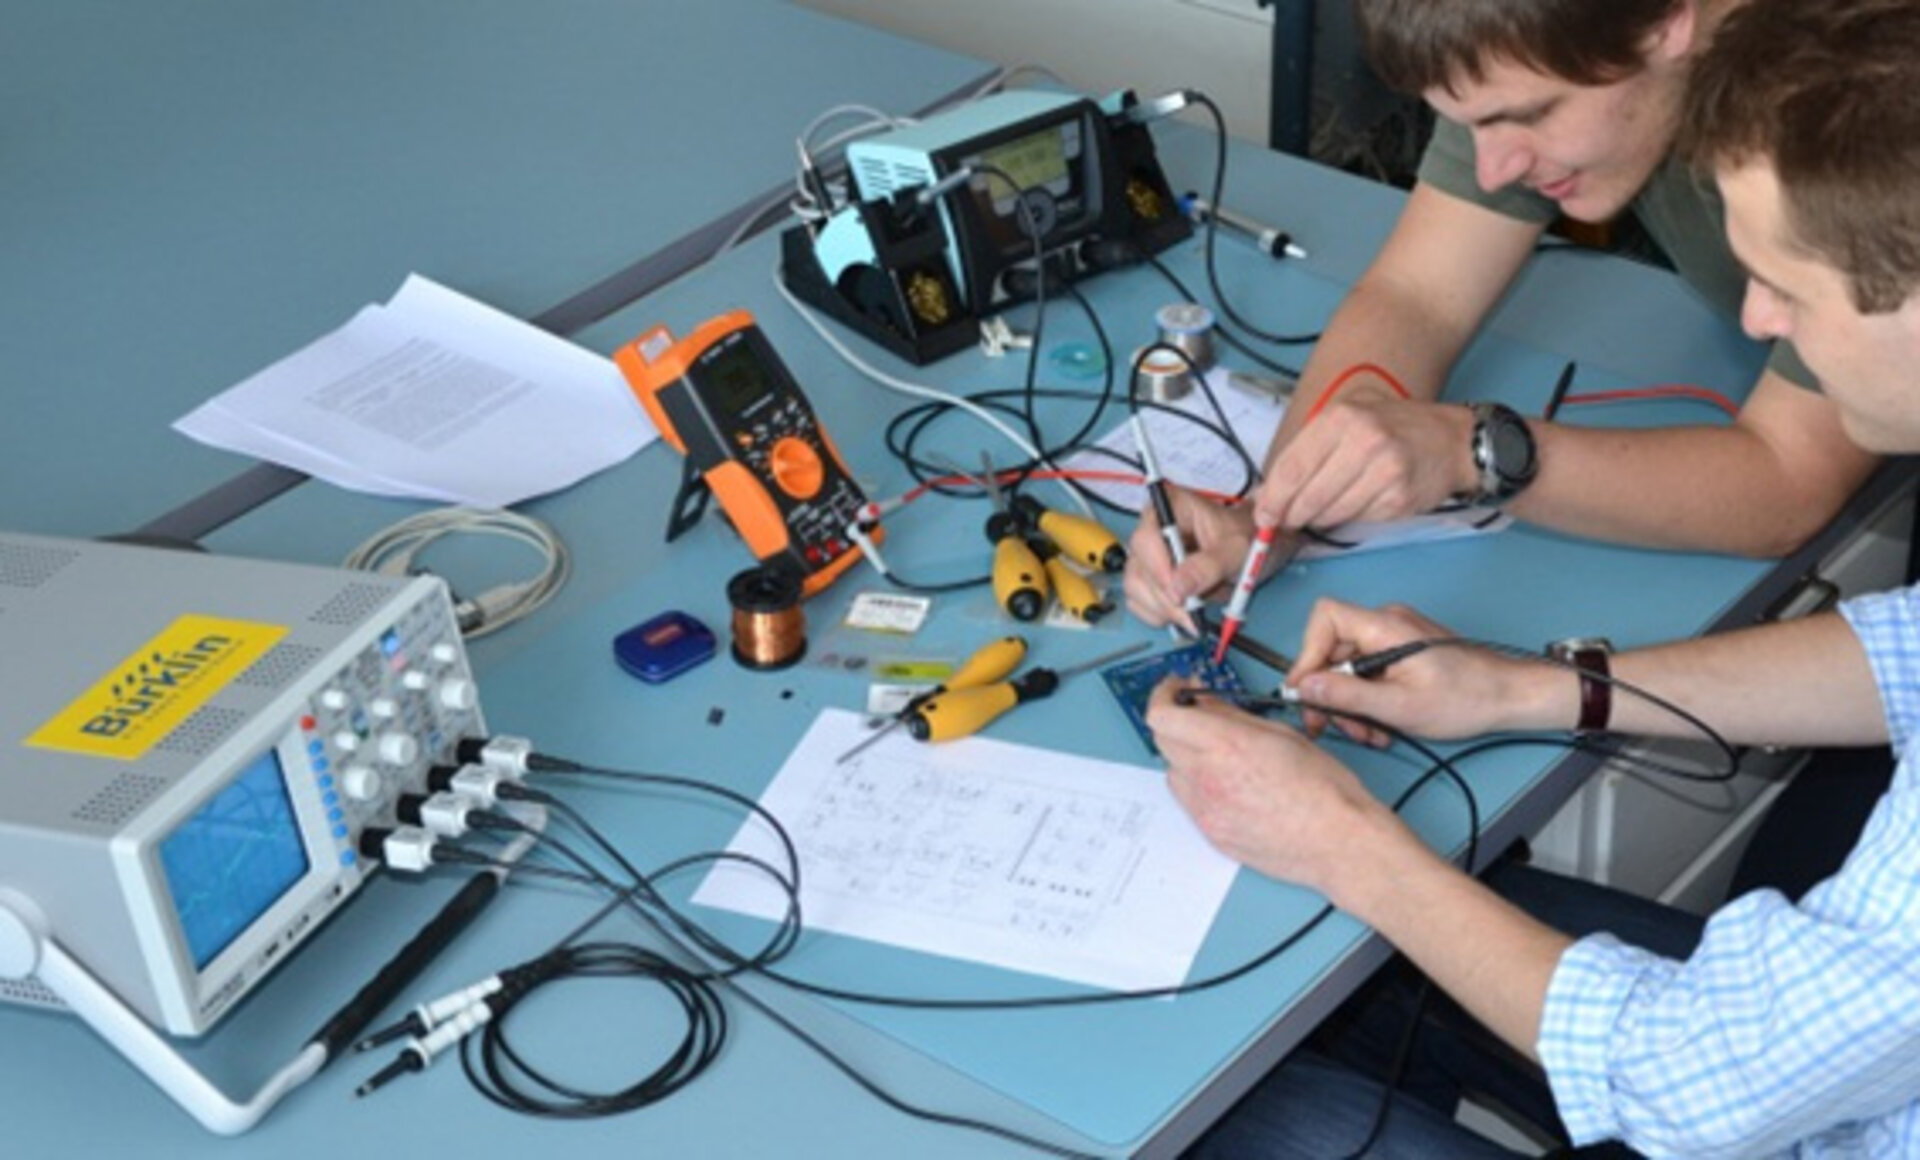 Students perform measurements on electronics hardware